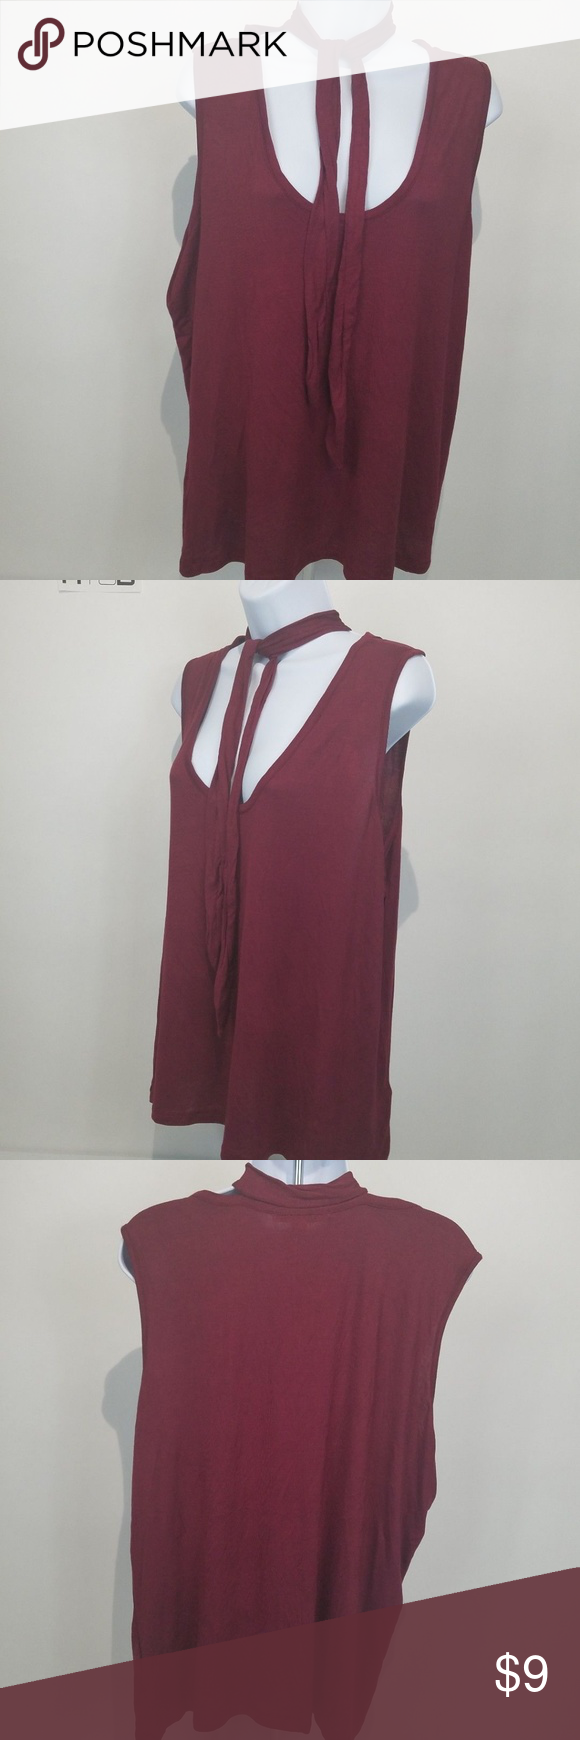 f9c5e106c51 Extra Touch Womens Plus Size 3X Top Burgundy Red Extra Touch Womens Plus  Size 3X Top Burgundy Red Sleeveless Tie Choker NWT C13 Extra Touch Tops  Blouses